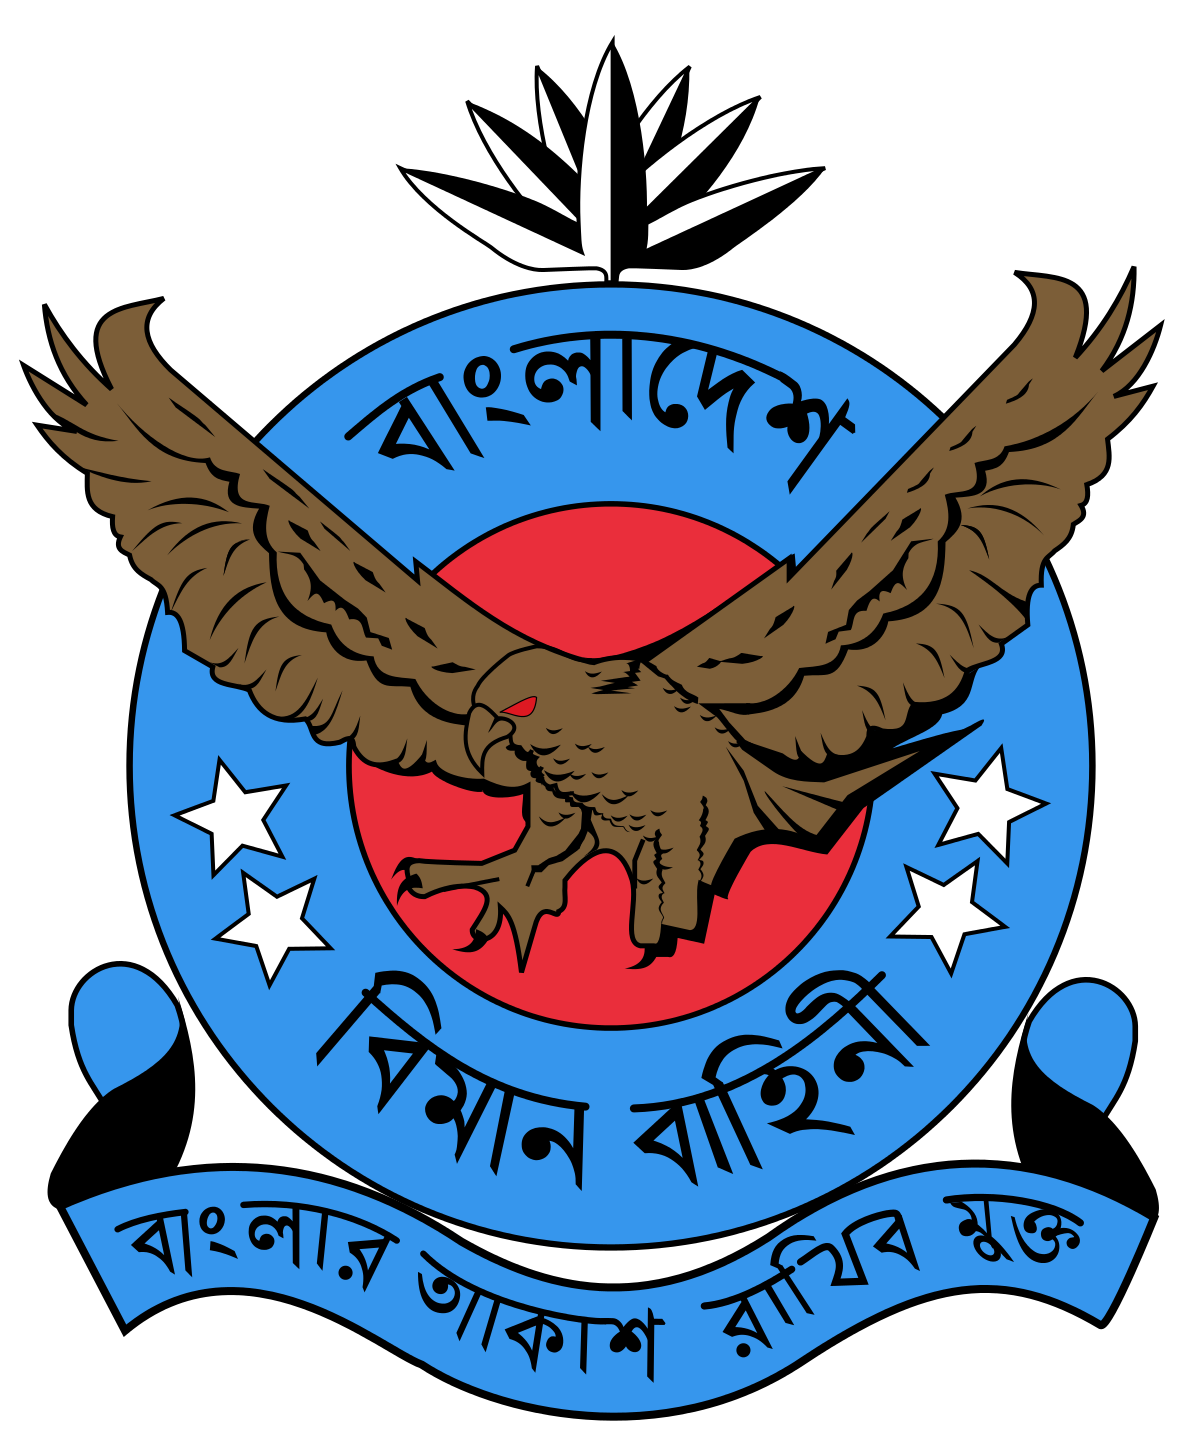 Bangladesh Air Force.